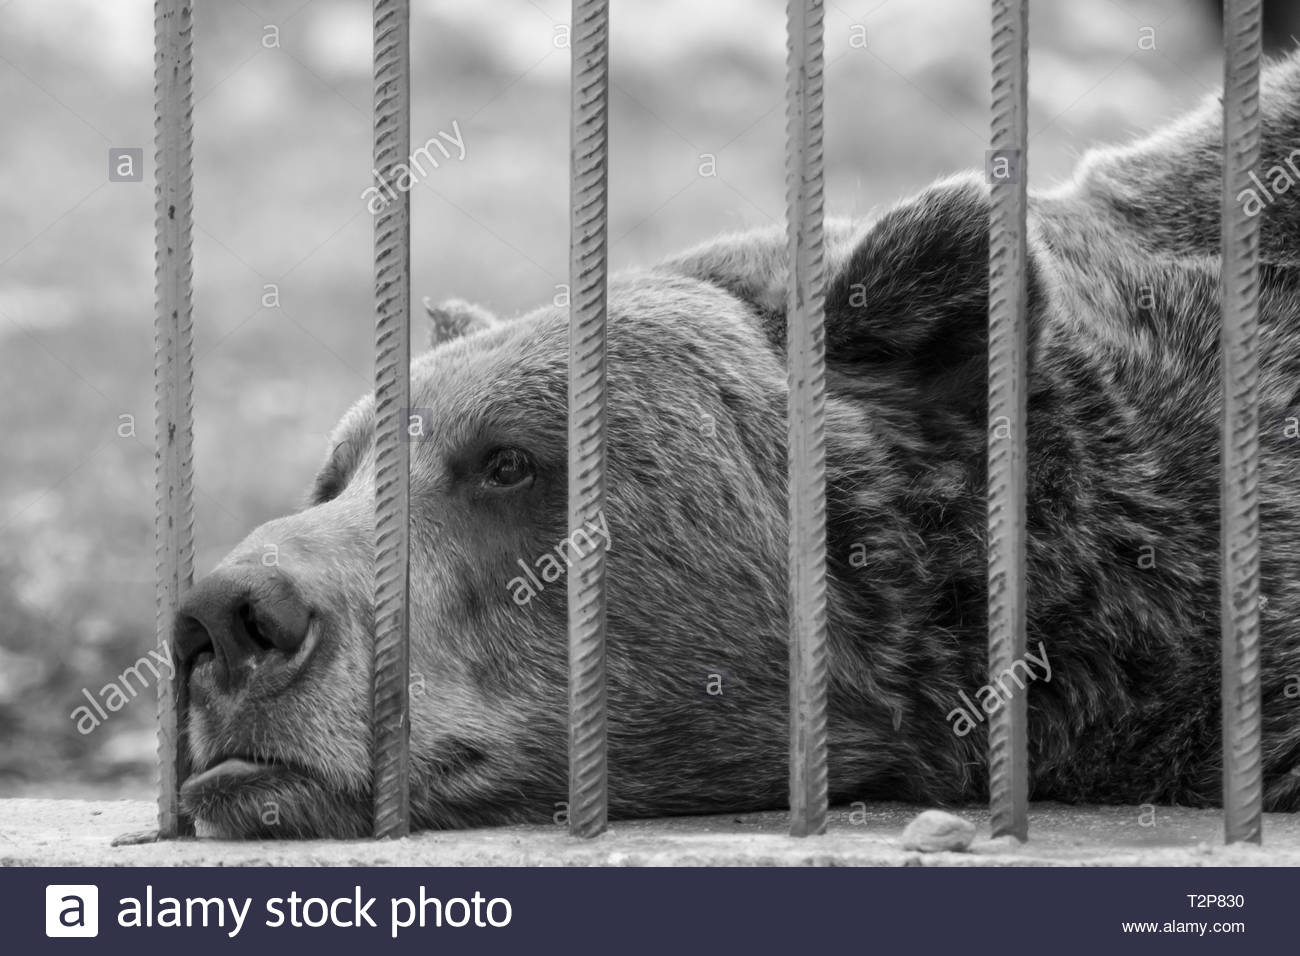 Sad captive brown bear in a zoo cage looking through the metal bars. Concept of animal rights, abuse, cruelty, misery and pain. - Stock Image